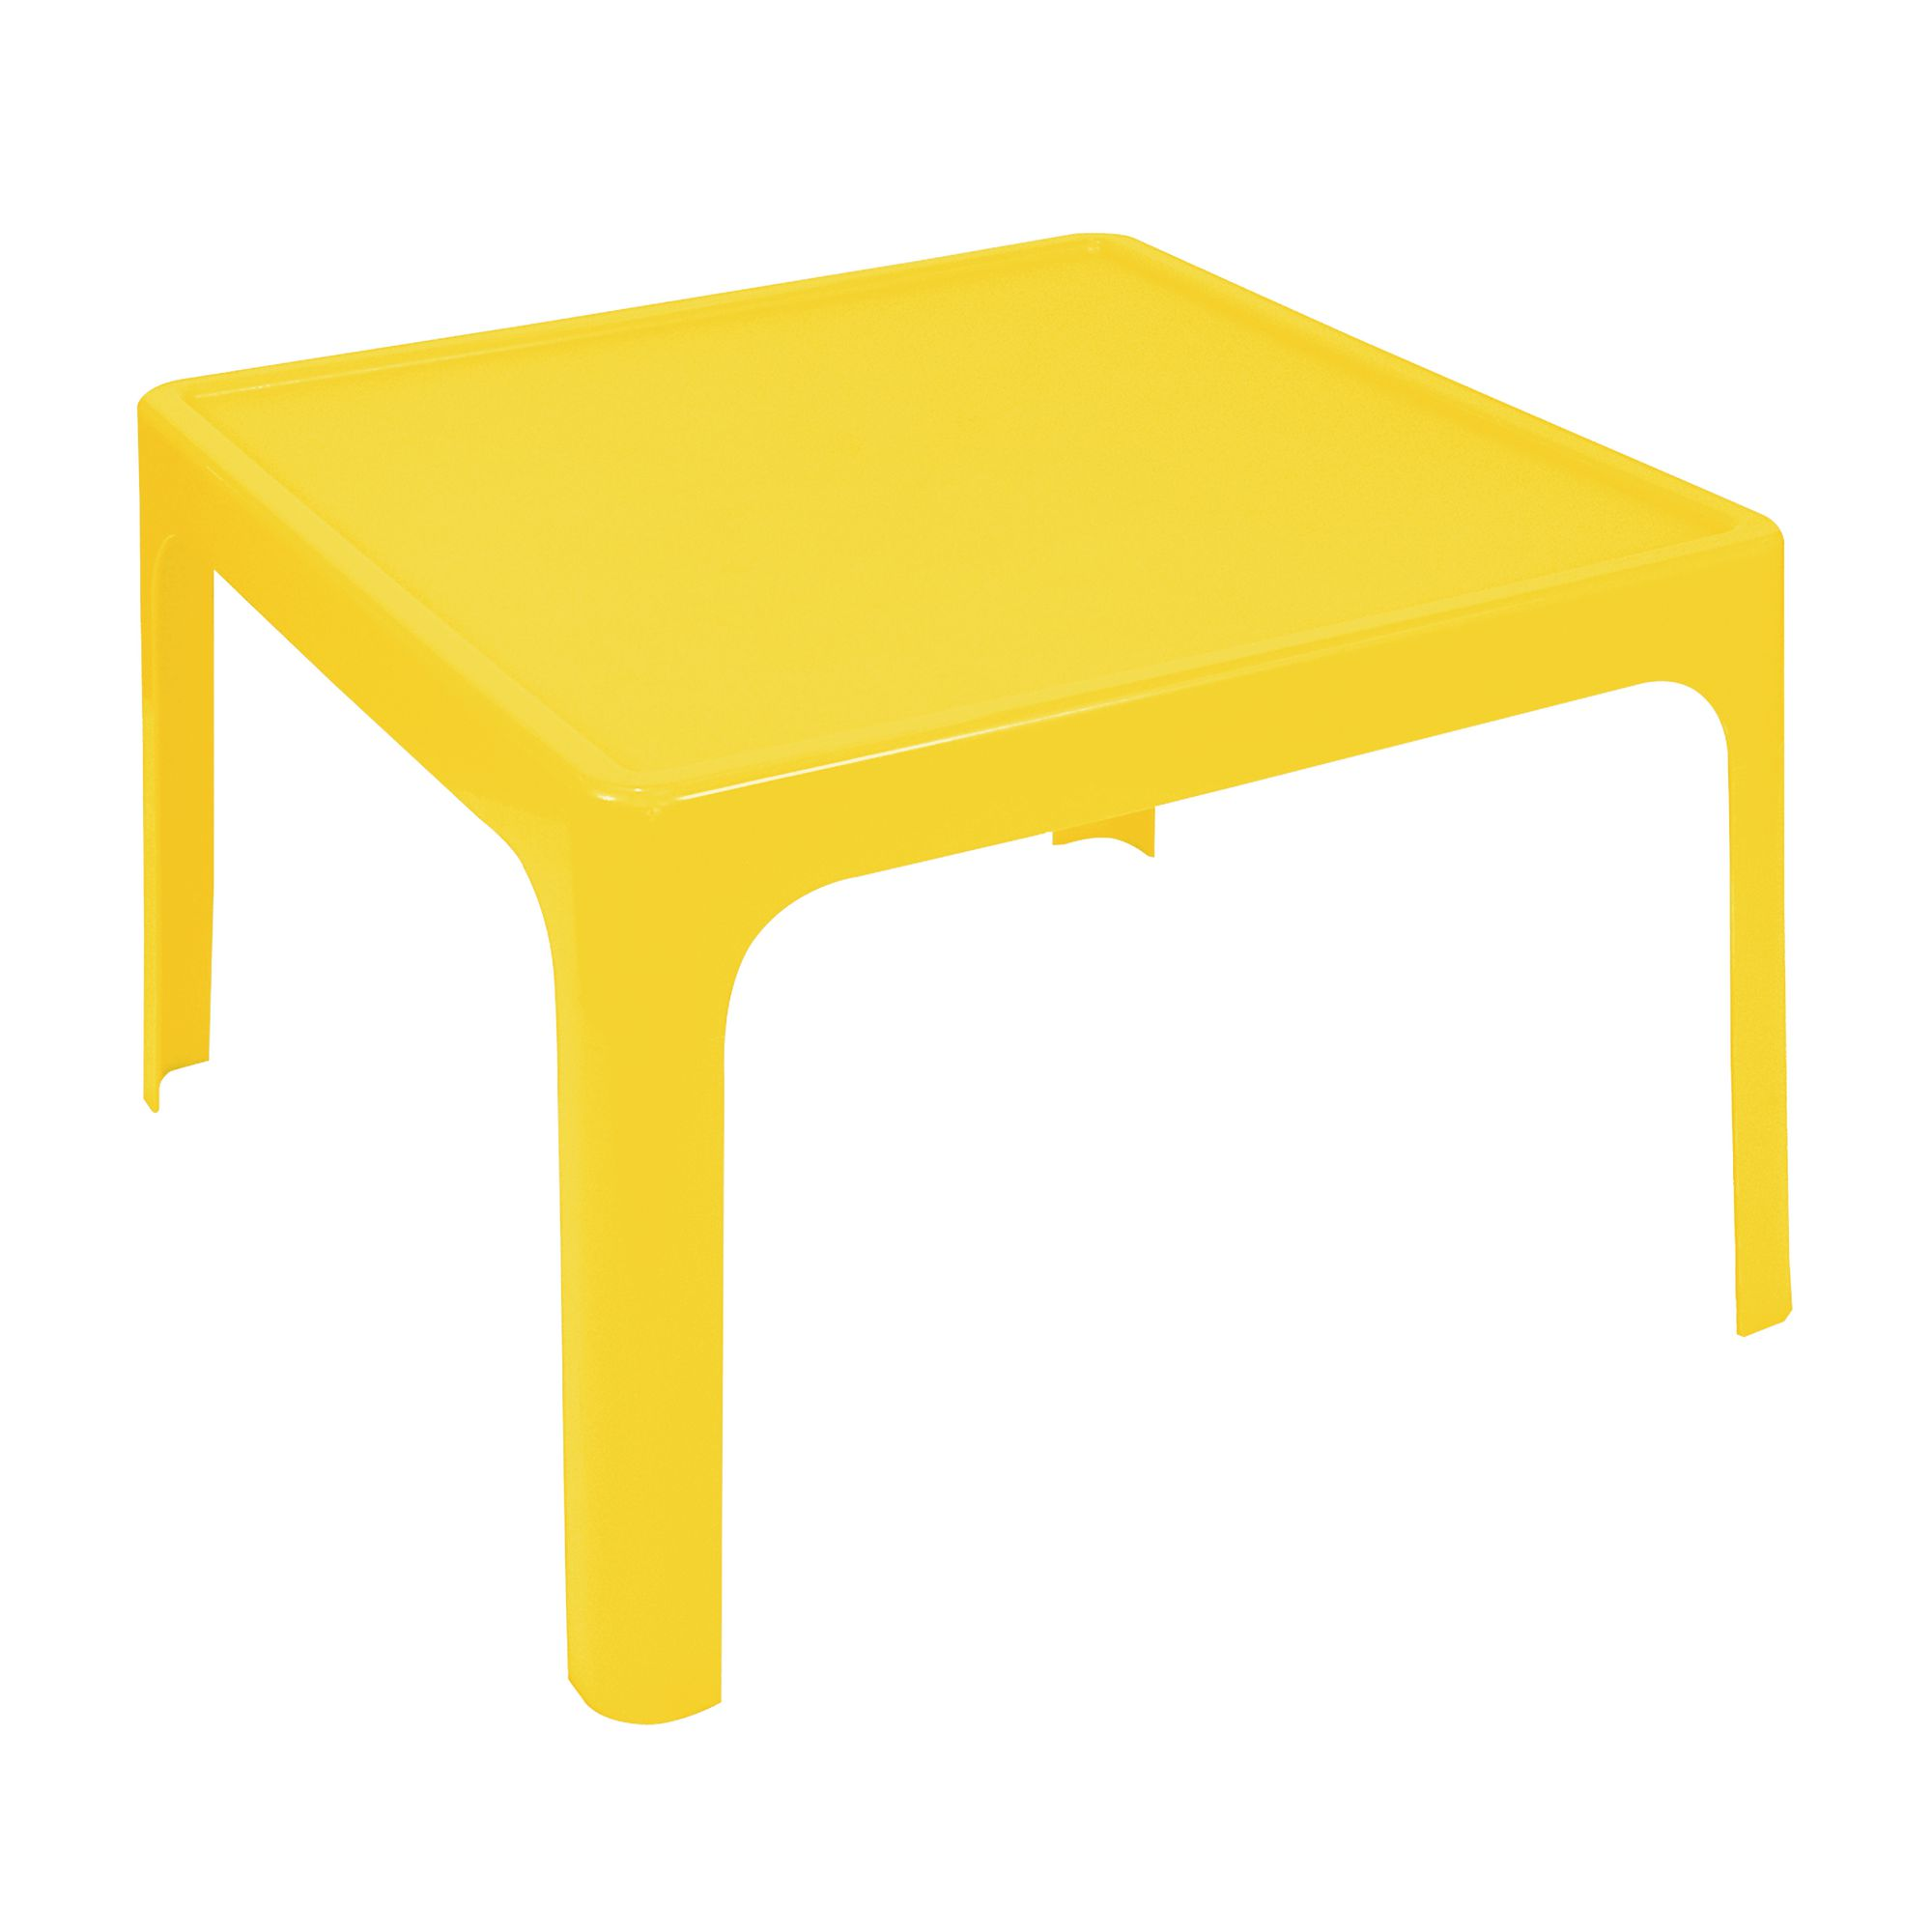 Profile Square Durable Plastic Outdoor Table   720 X 720 X 500mm   Yellow